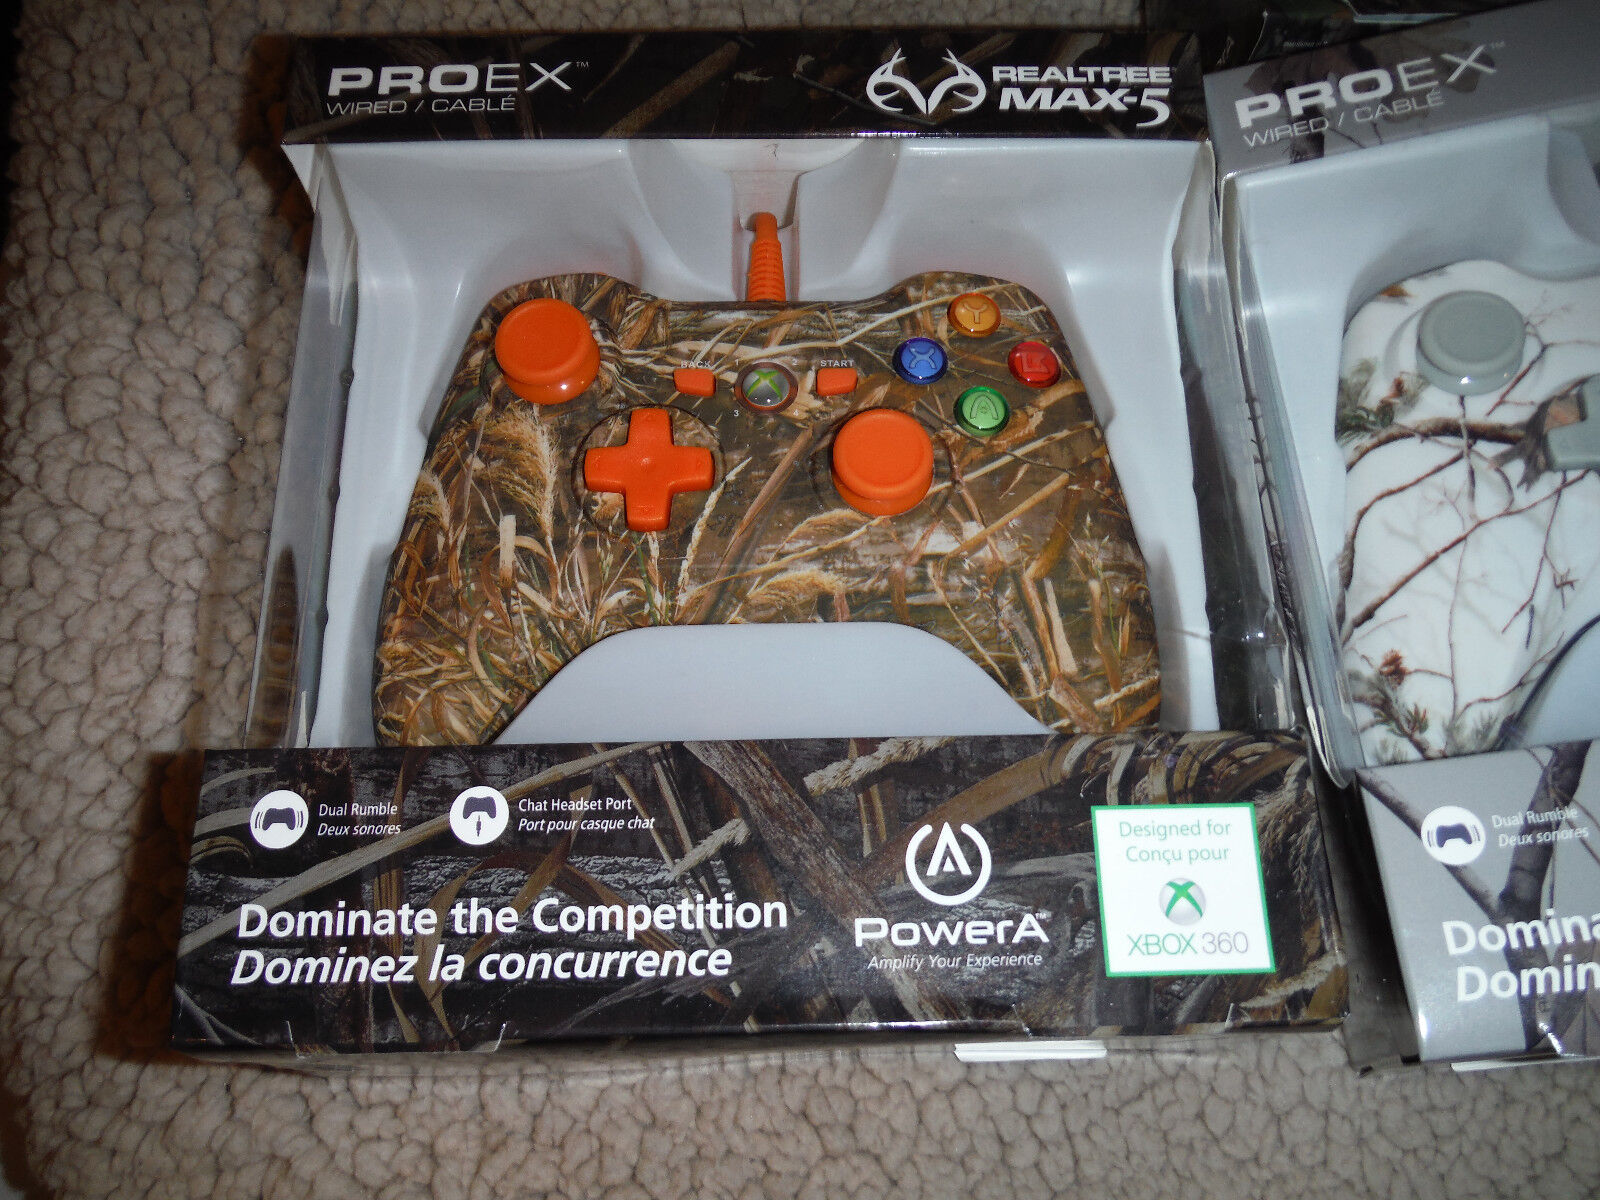 Xbox 360 PowerA Realtree Max-5 Pro EX Wired Controller | eBay